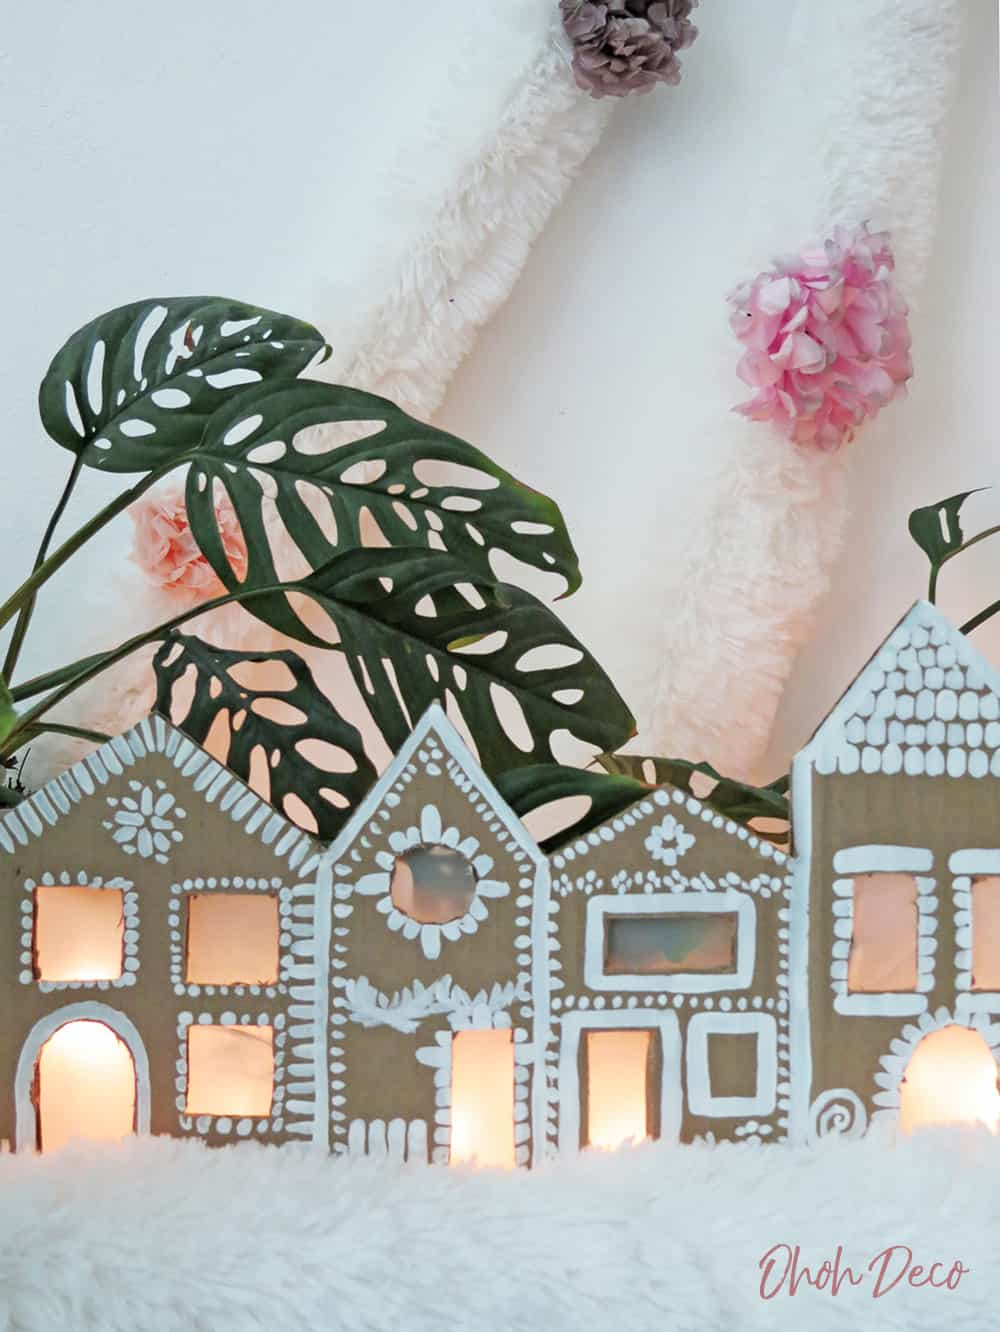 How to make a Christmas gingerbread village with cardboard